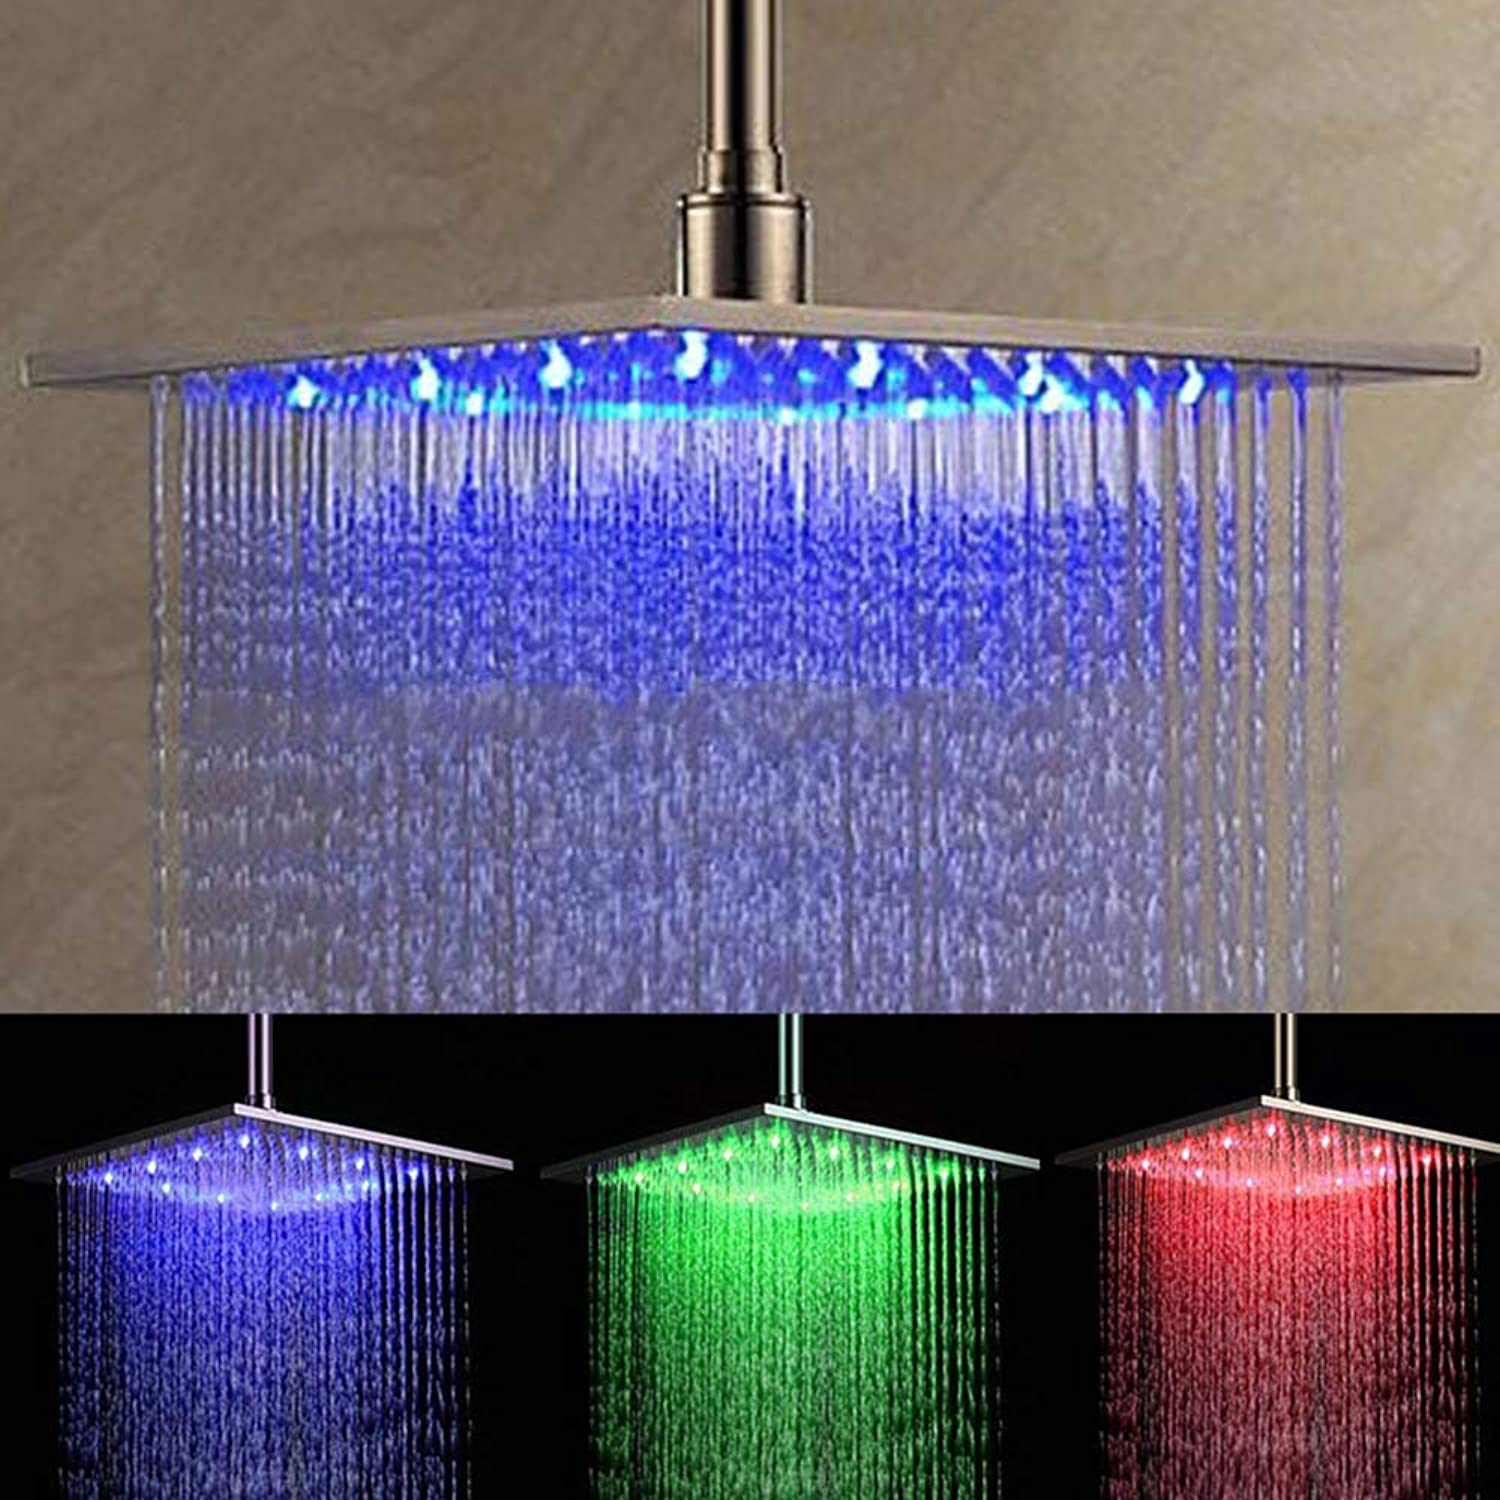 12  LED Shower Head,Temperature control Changing 3 color High Pressure Ionic Shower Head Saving Water Showerhead, Overhead Rainfall Shower Head, Spa Showerhead